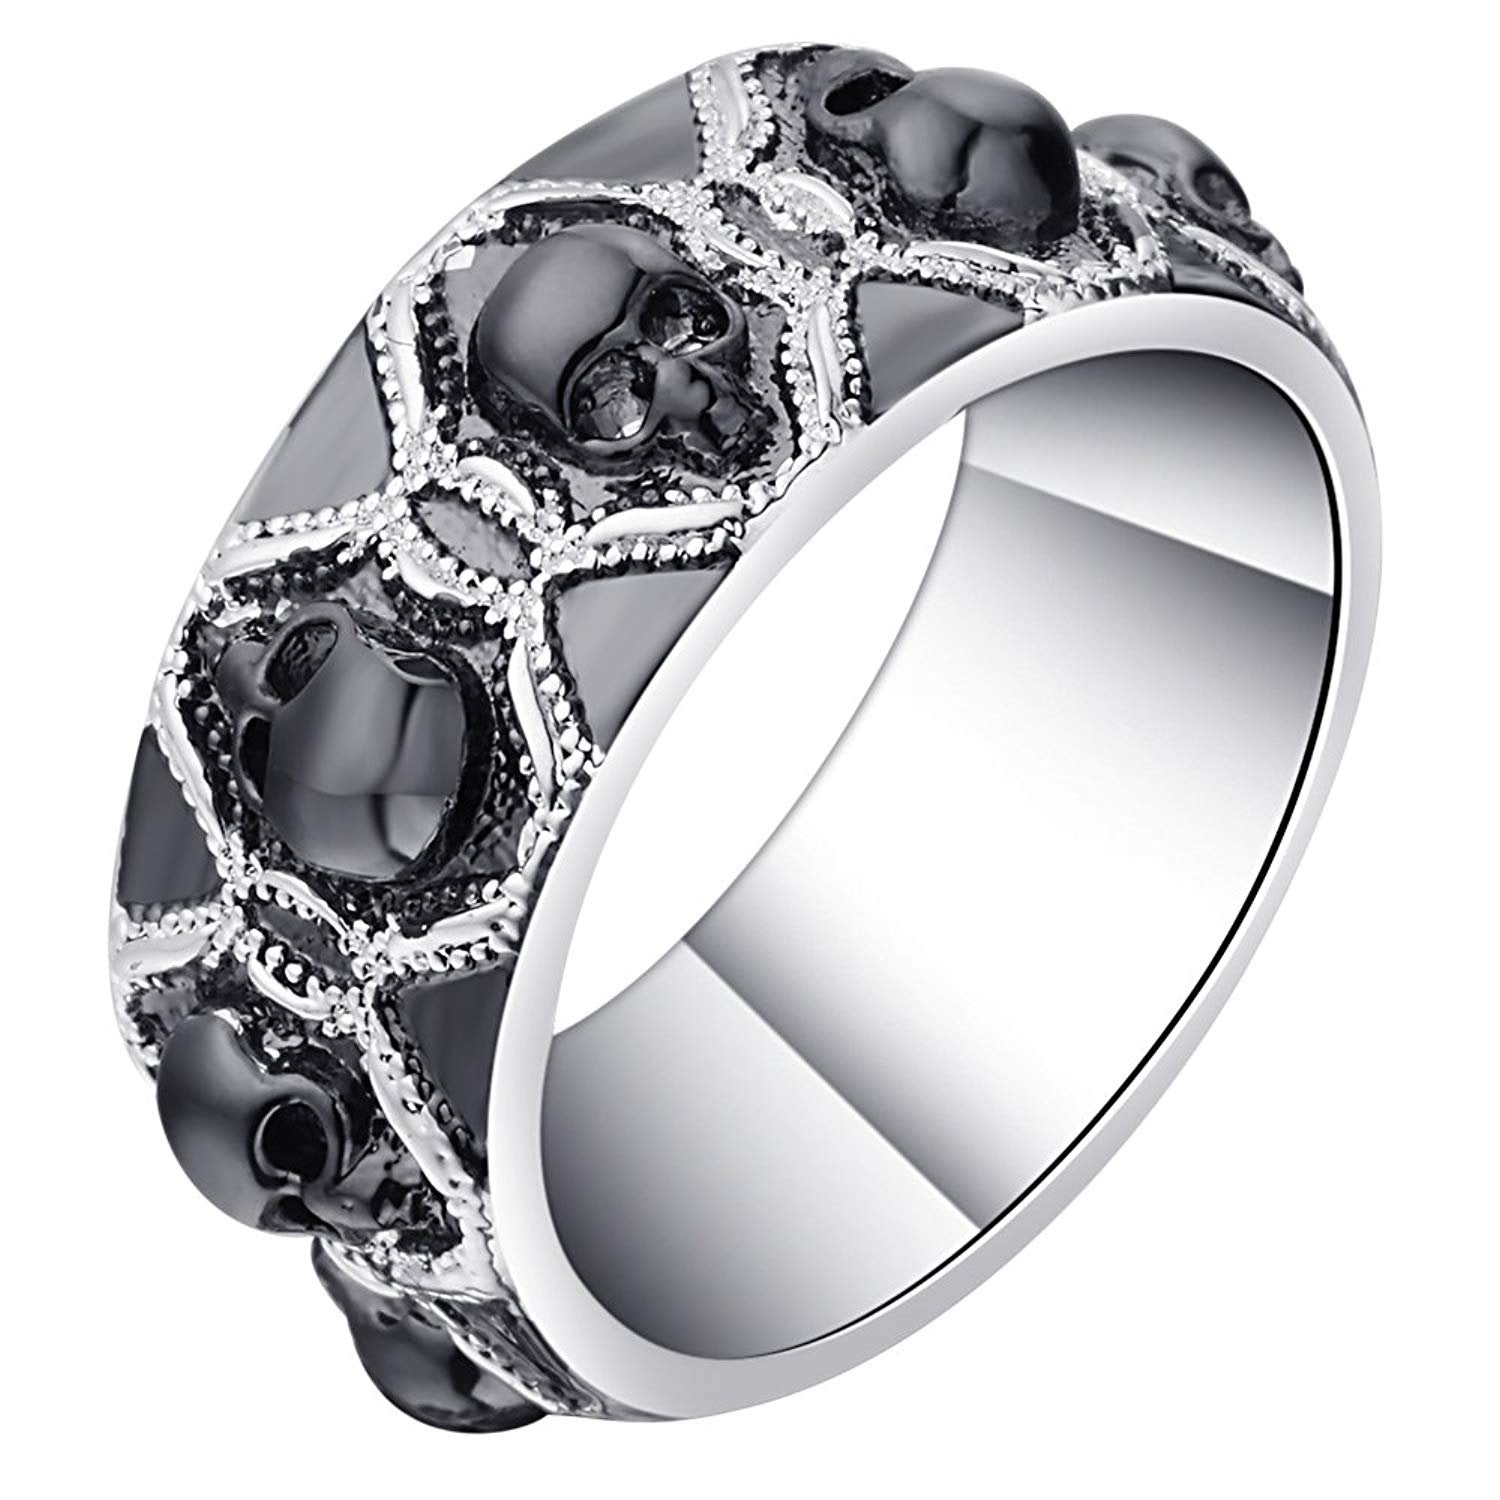 Skulls Black Punk Style 8mm Wedding Band Ring Ginger Lyne Collection